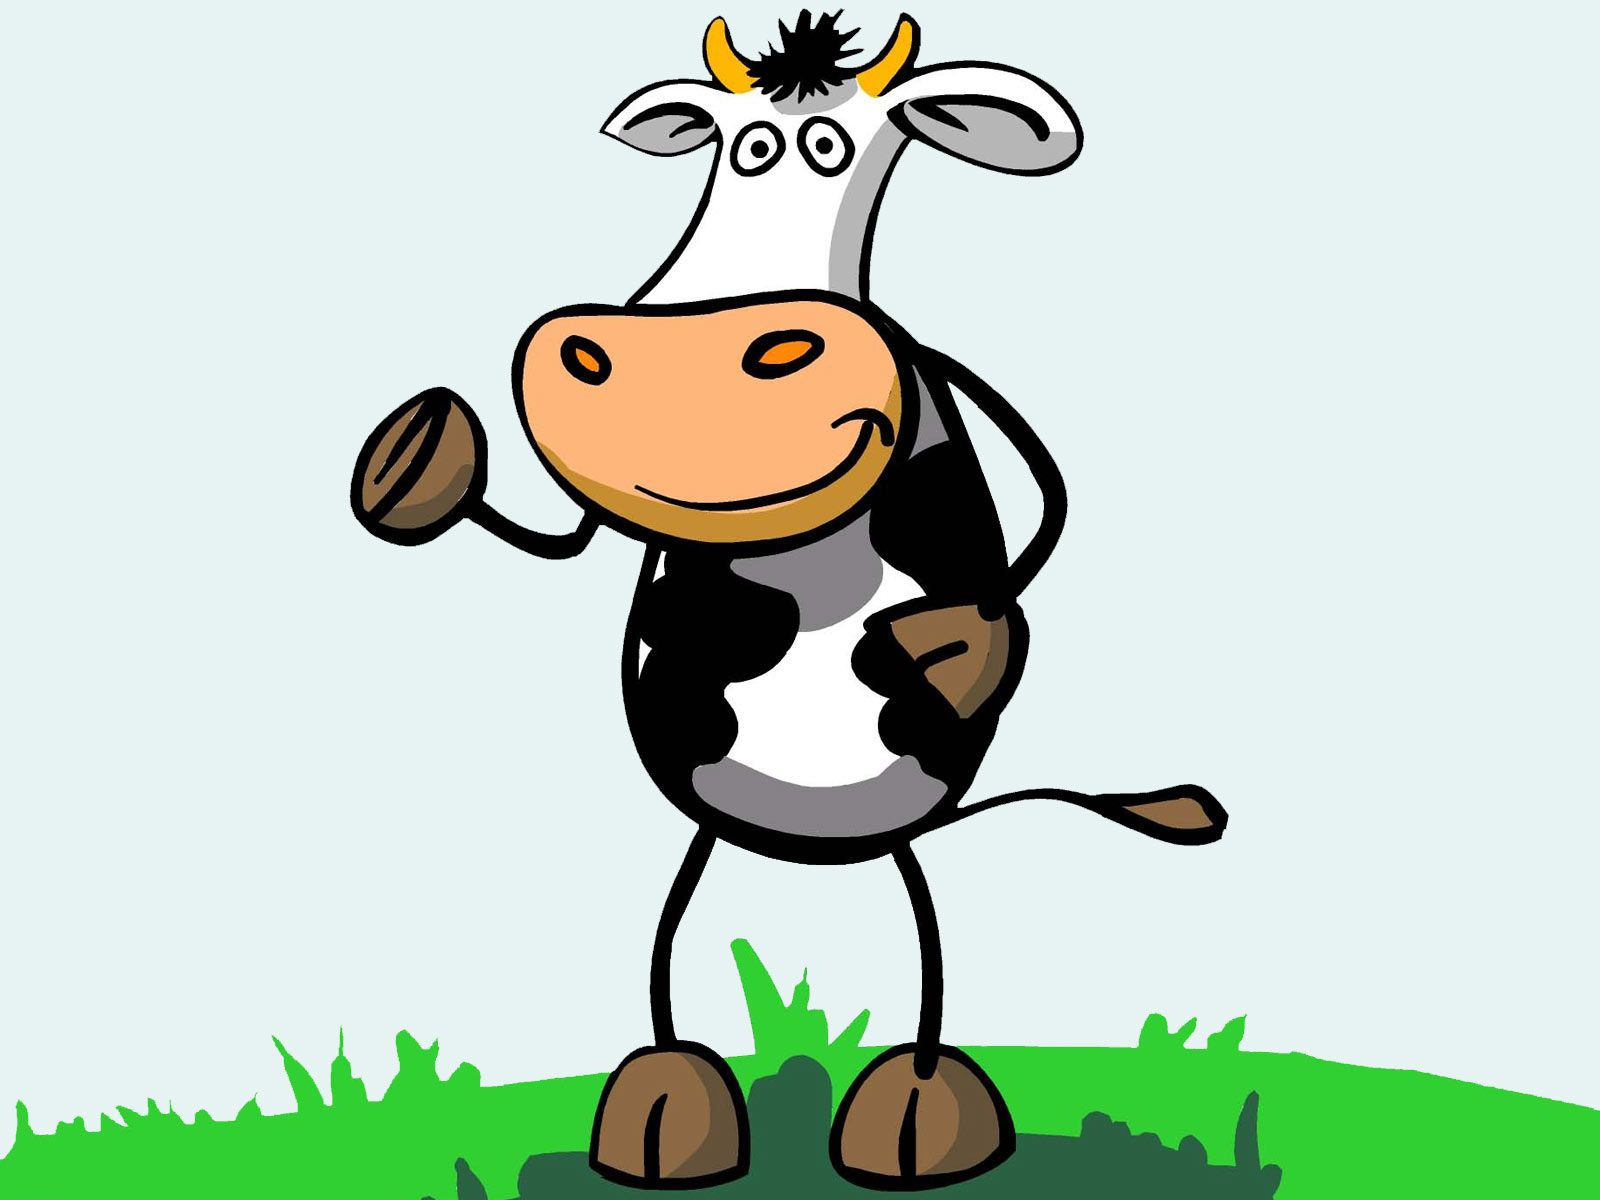 1600x1200 Download Cartoon Cow Picture Wallpaper 1600x1200 | Full HD ...